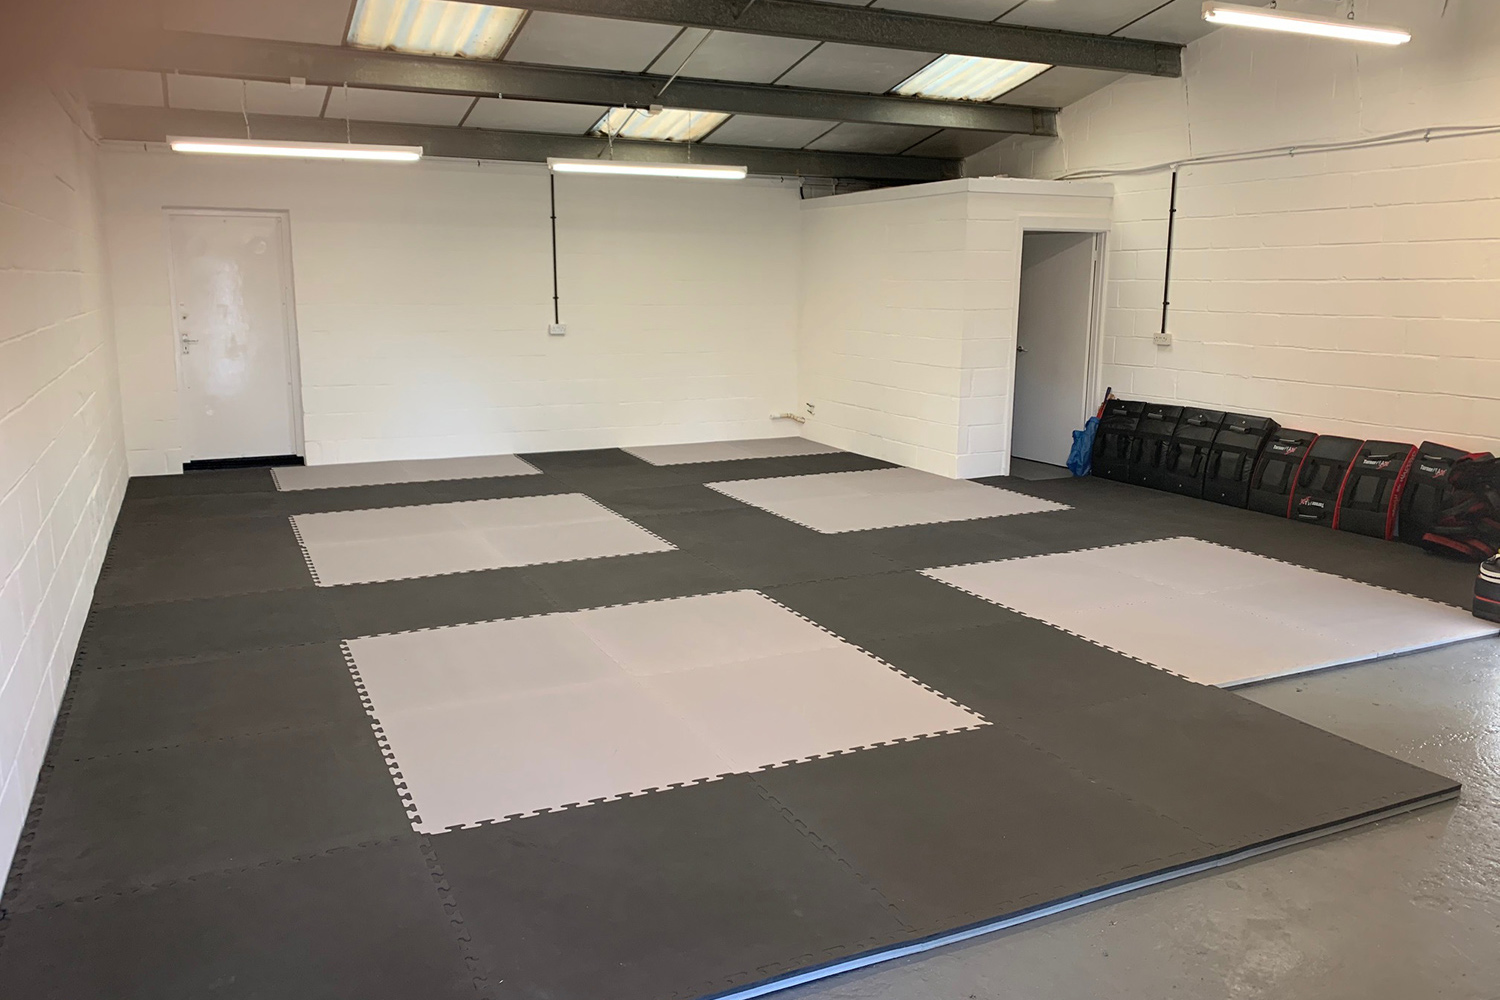 At last, took a while. Mat's down. We can start training